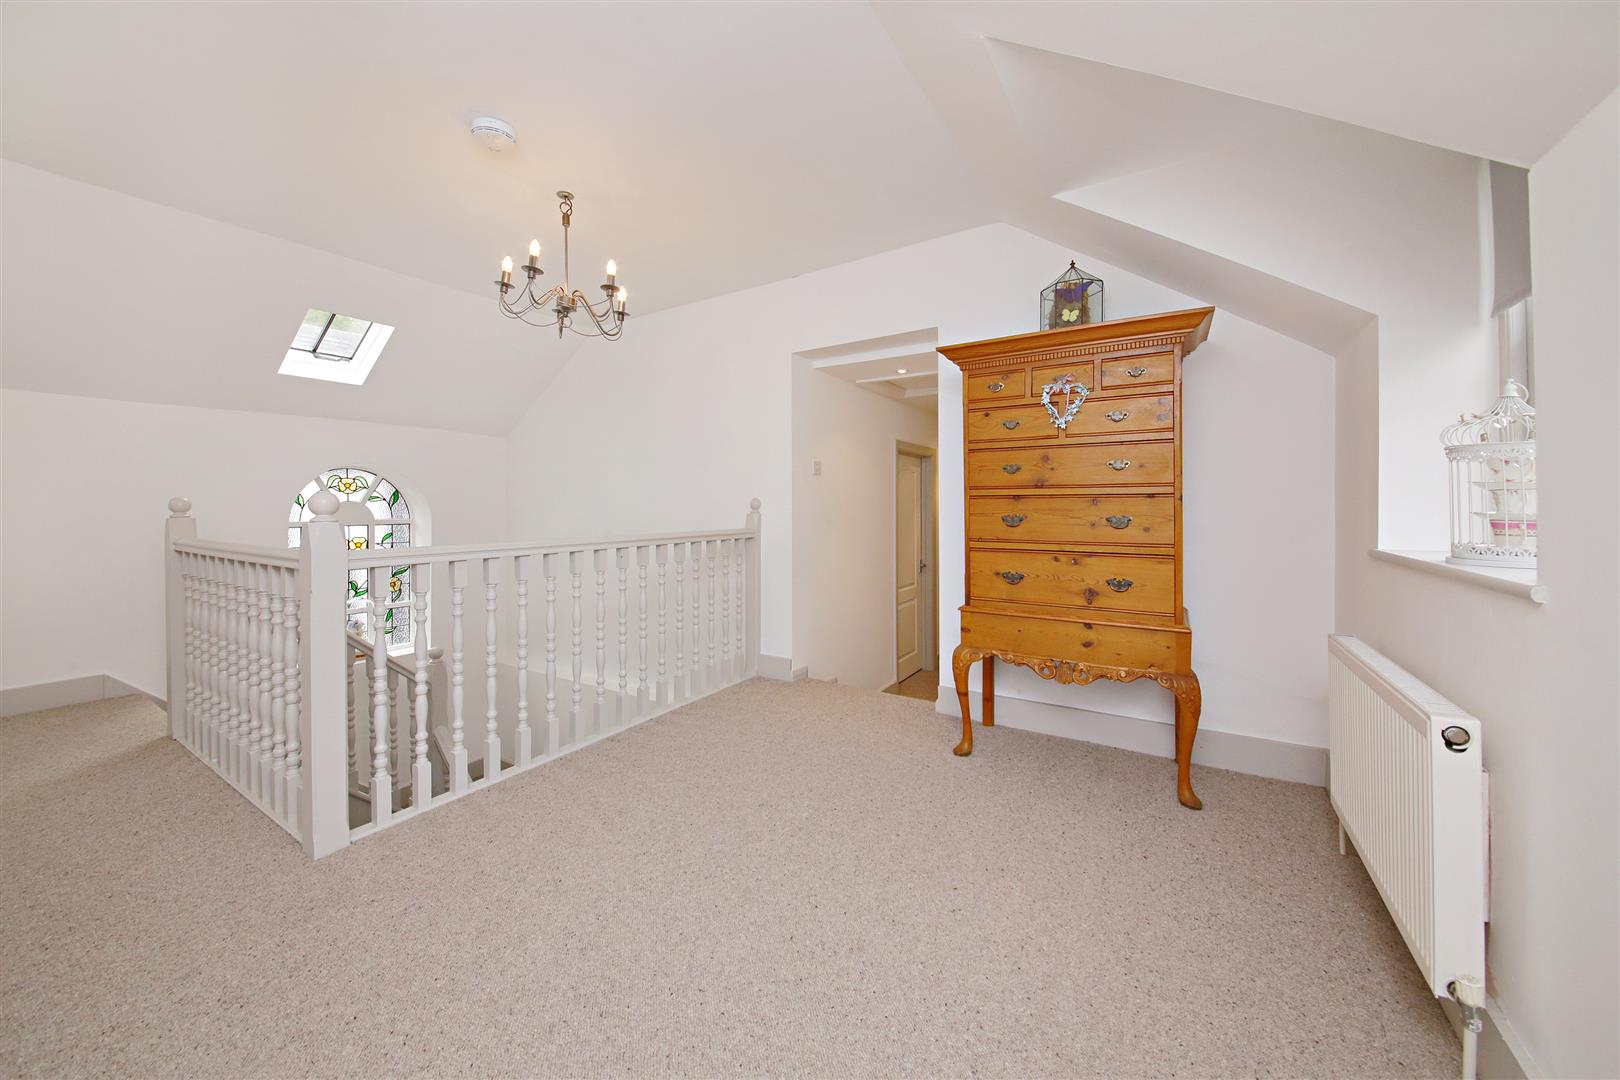 5 bed to rent in Letchmore Heath - (Property Image 8)